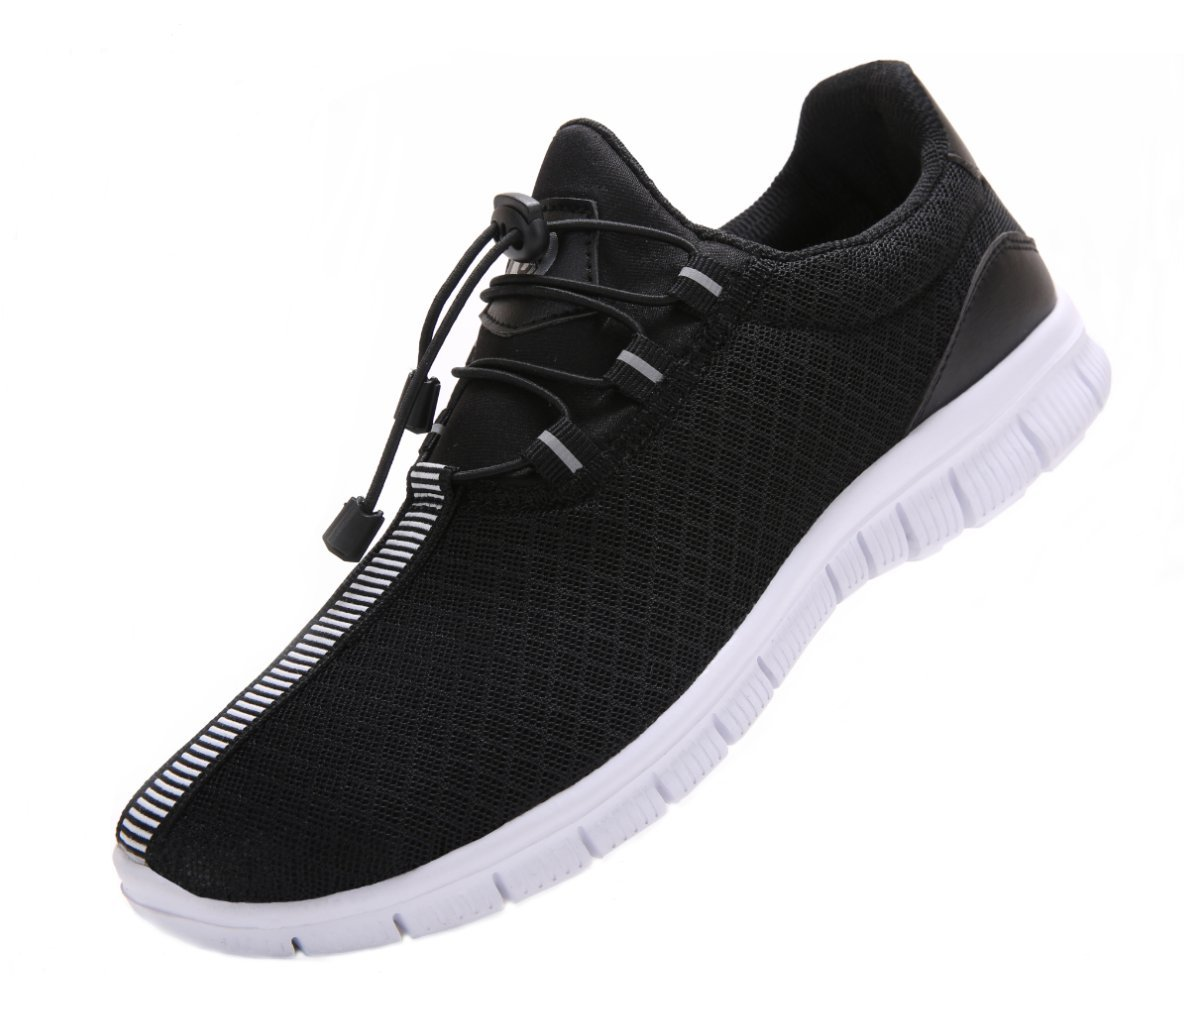 JUAN Men's Running Shoes Fashion Breathable Sneakers Mesh Soft Sole Casual Athletic Lightweight (11US/45EU,Men, Black) by JUAN